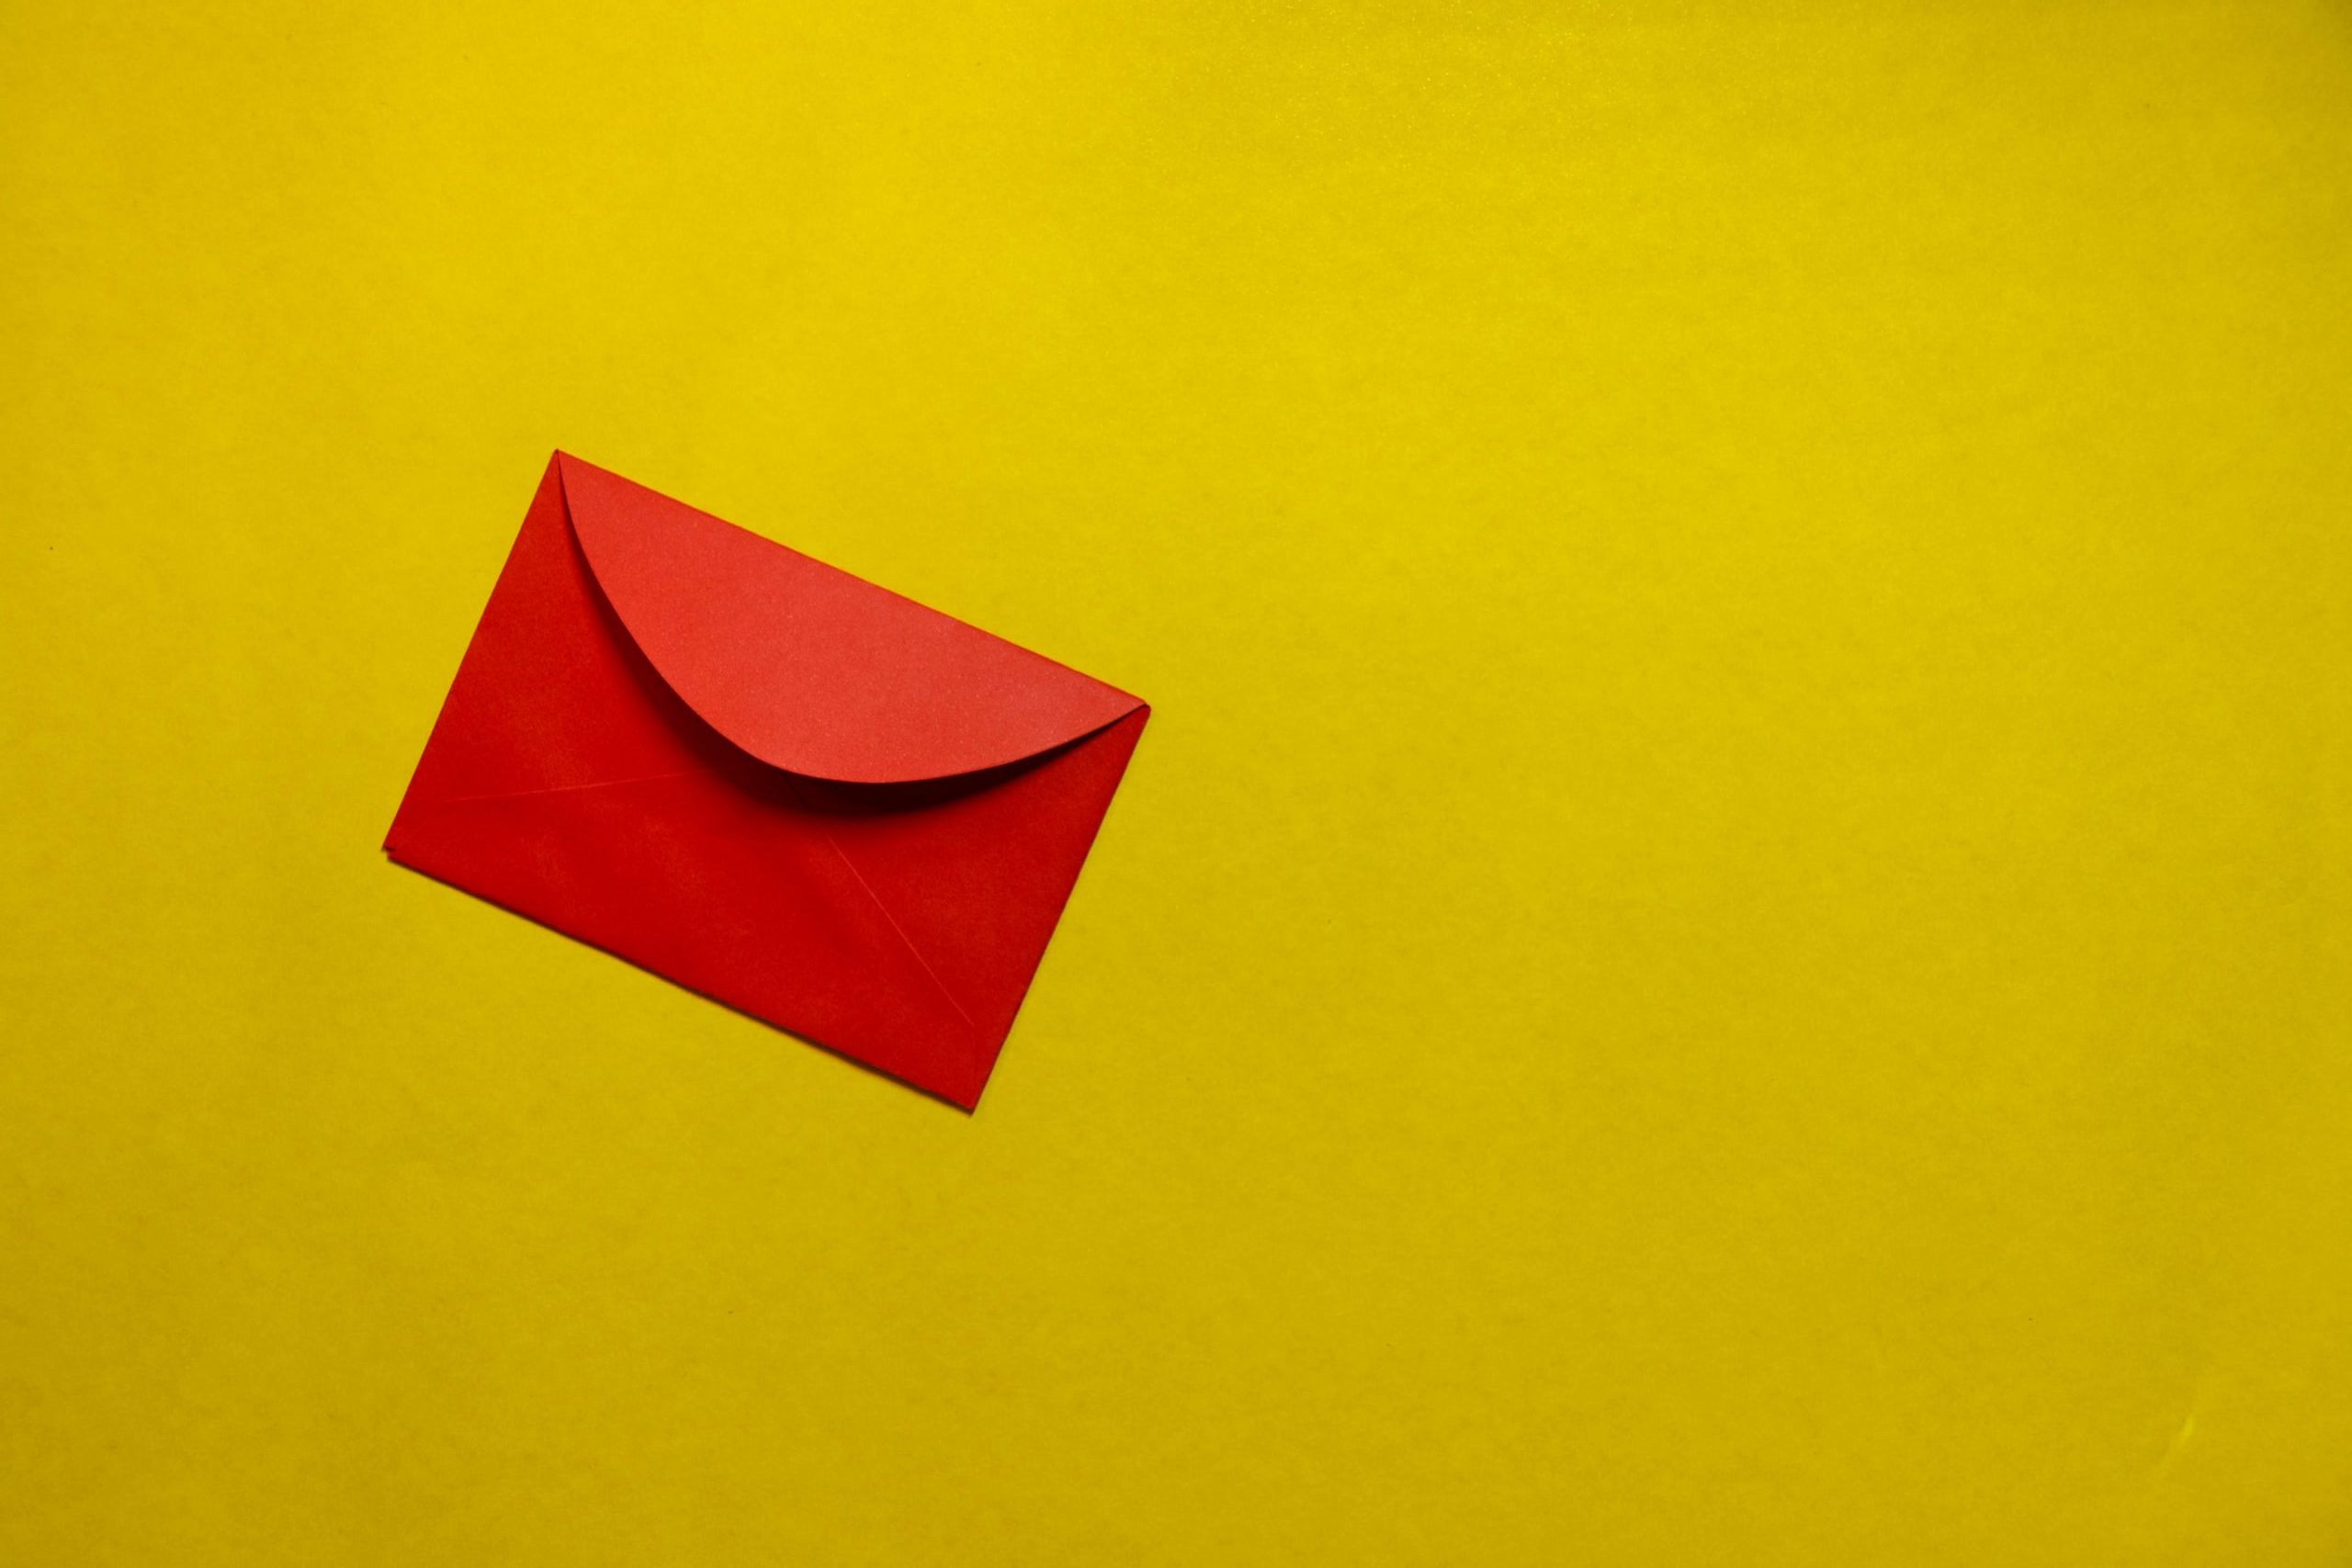 Red envelope on a golden yellow background.